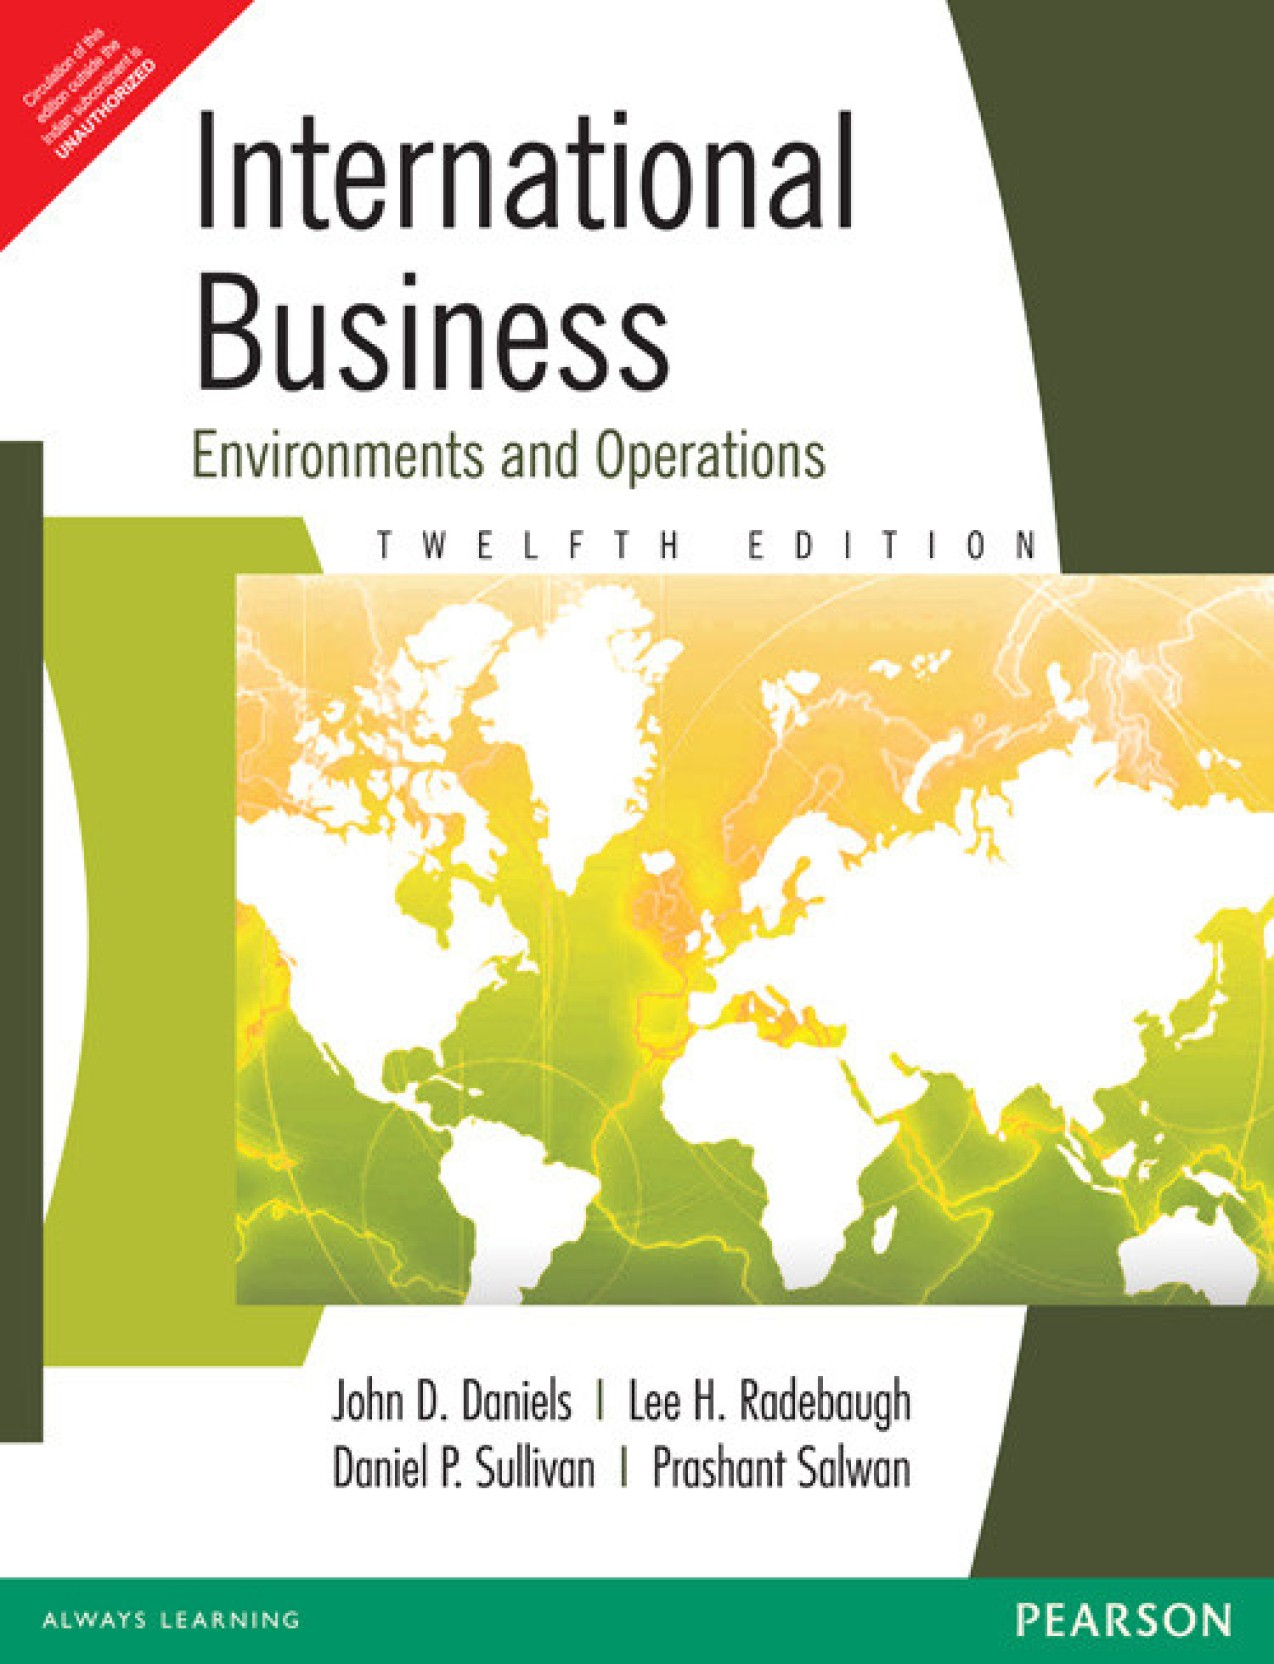 international business environments and operations Get textbooks on google play rent and save from the world's largest ebookstore read, highlight, and take notes, across web, tablet, and phone.